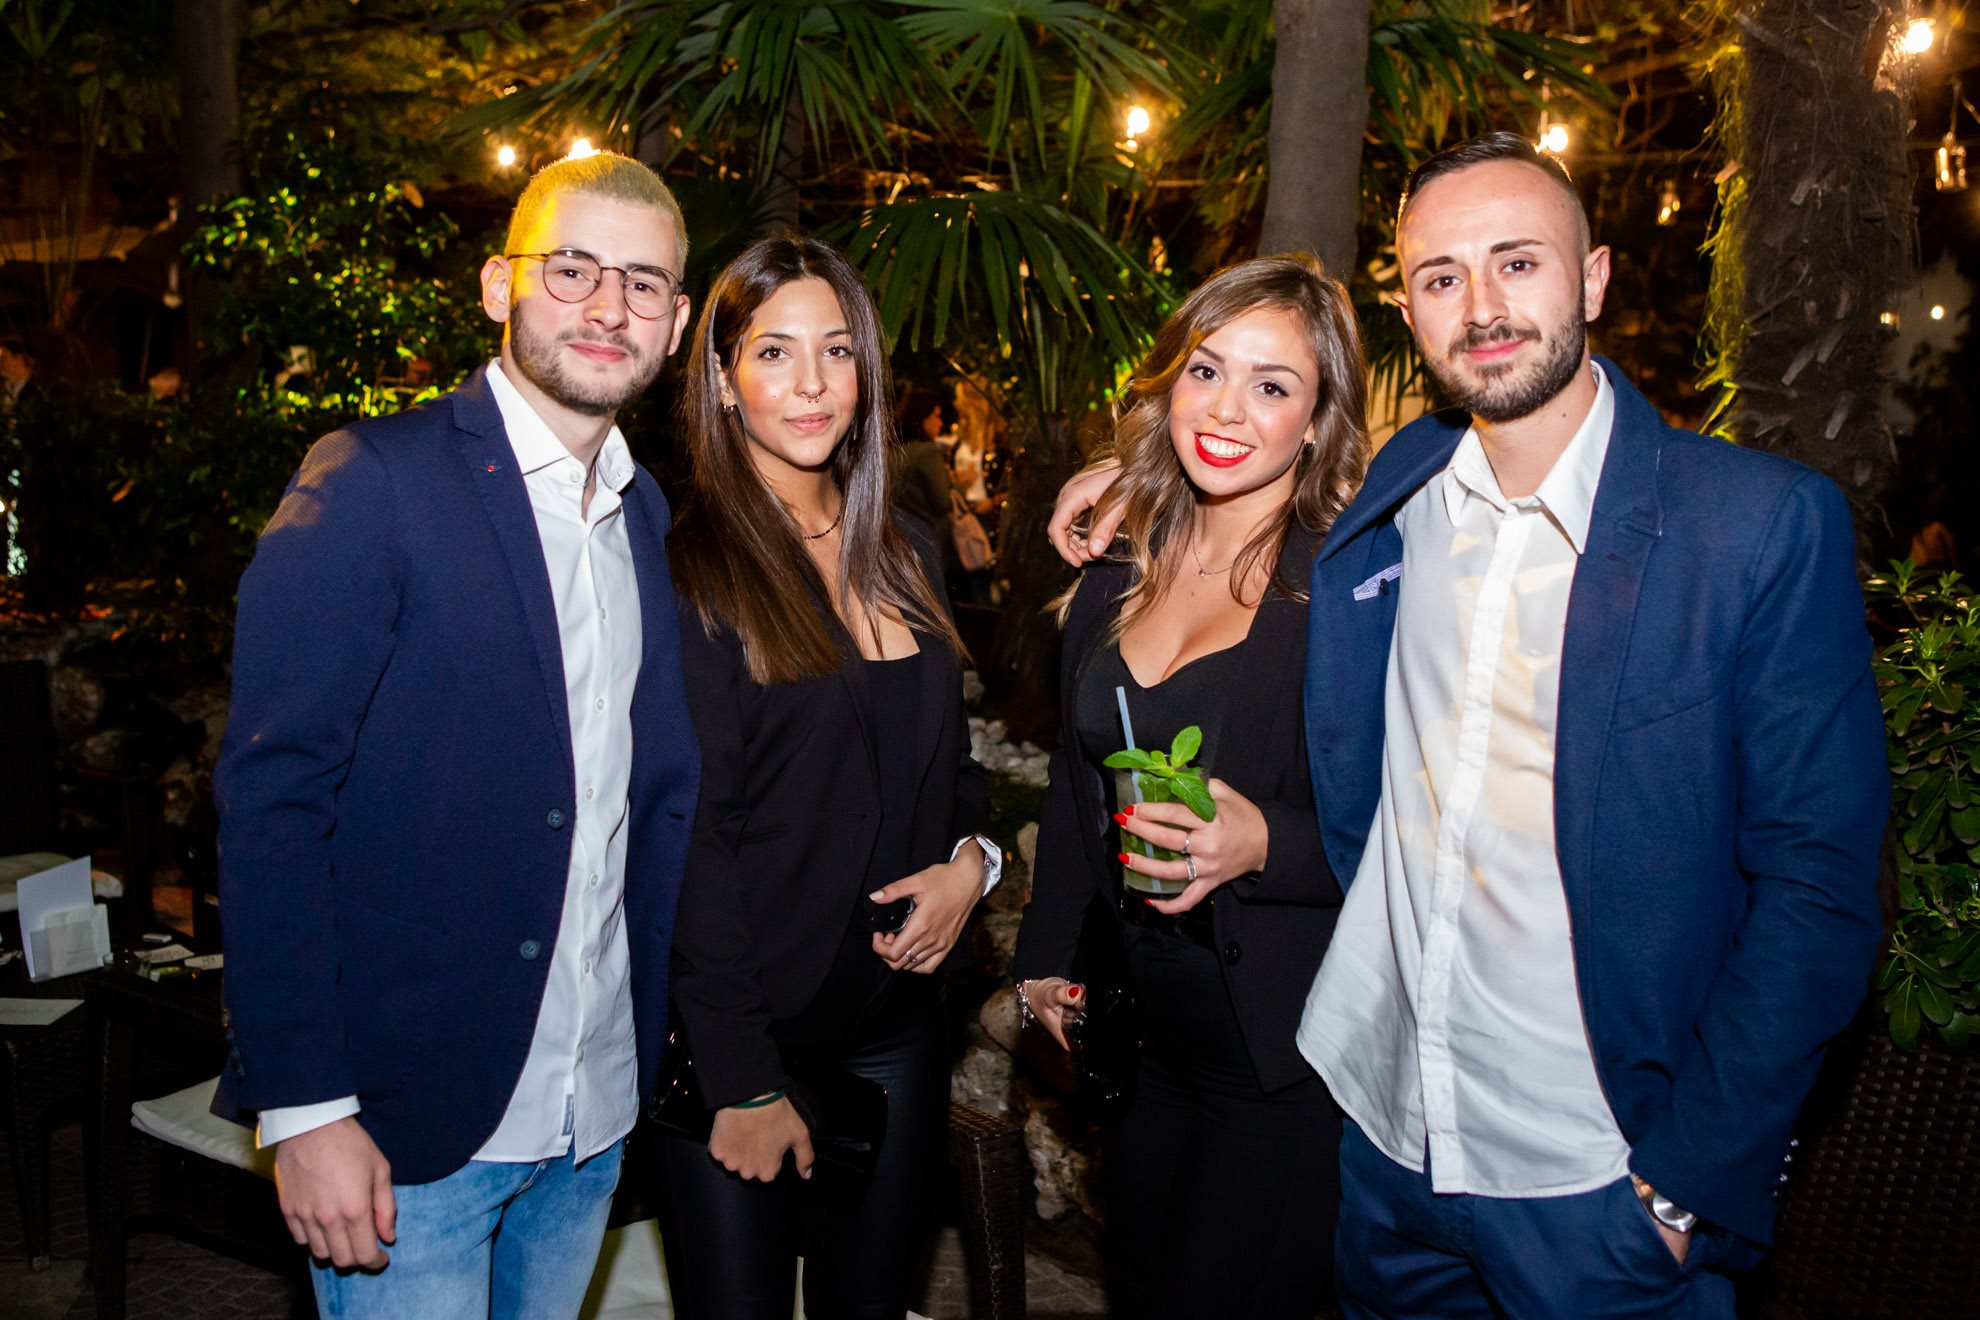 GARDEN OPENING COCKTAIL PARTY | YOUparti sheraton diana majestic